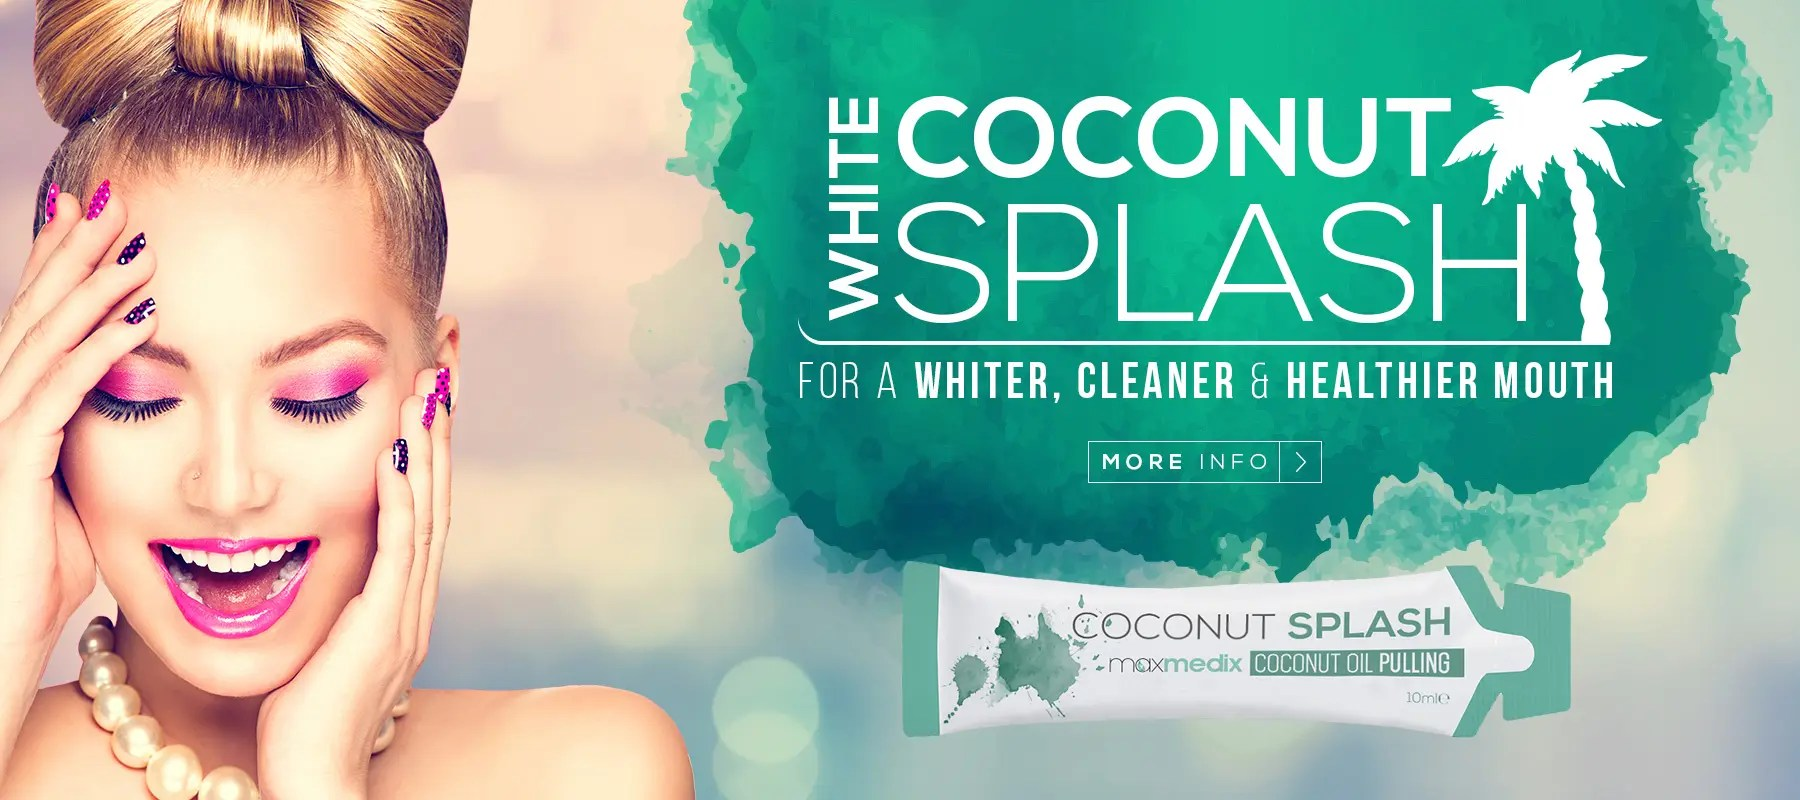 coconut splash teeth whitening reviews